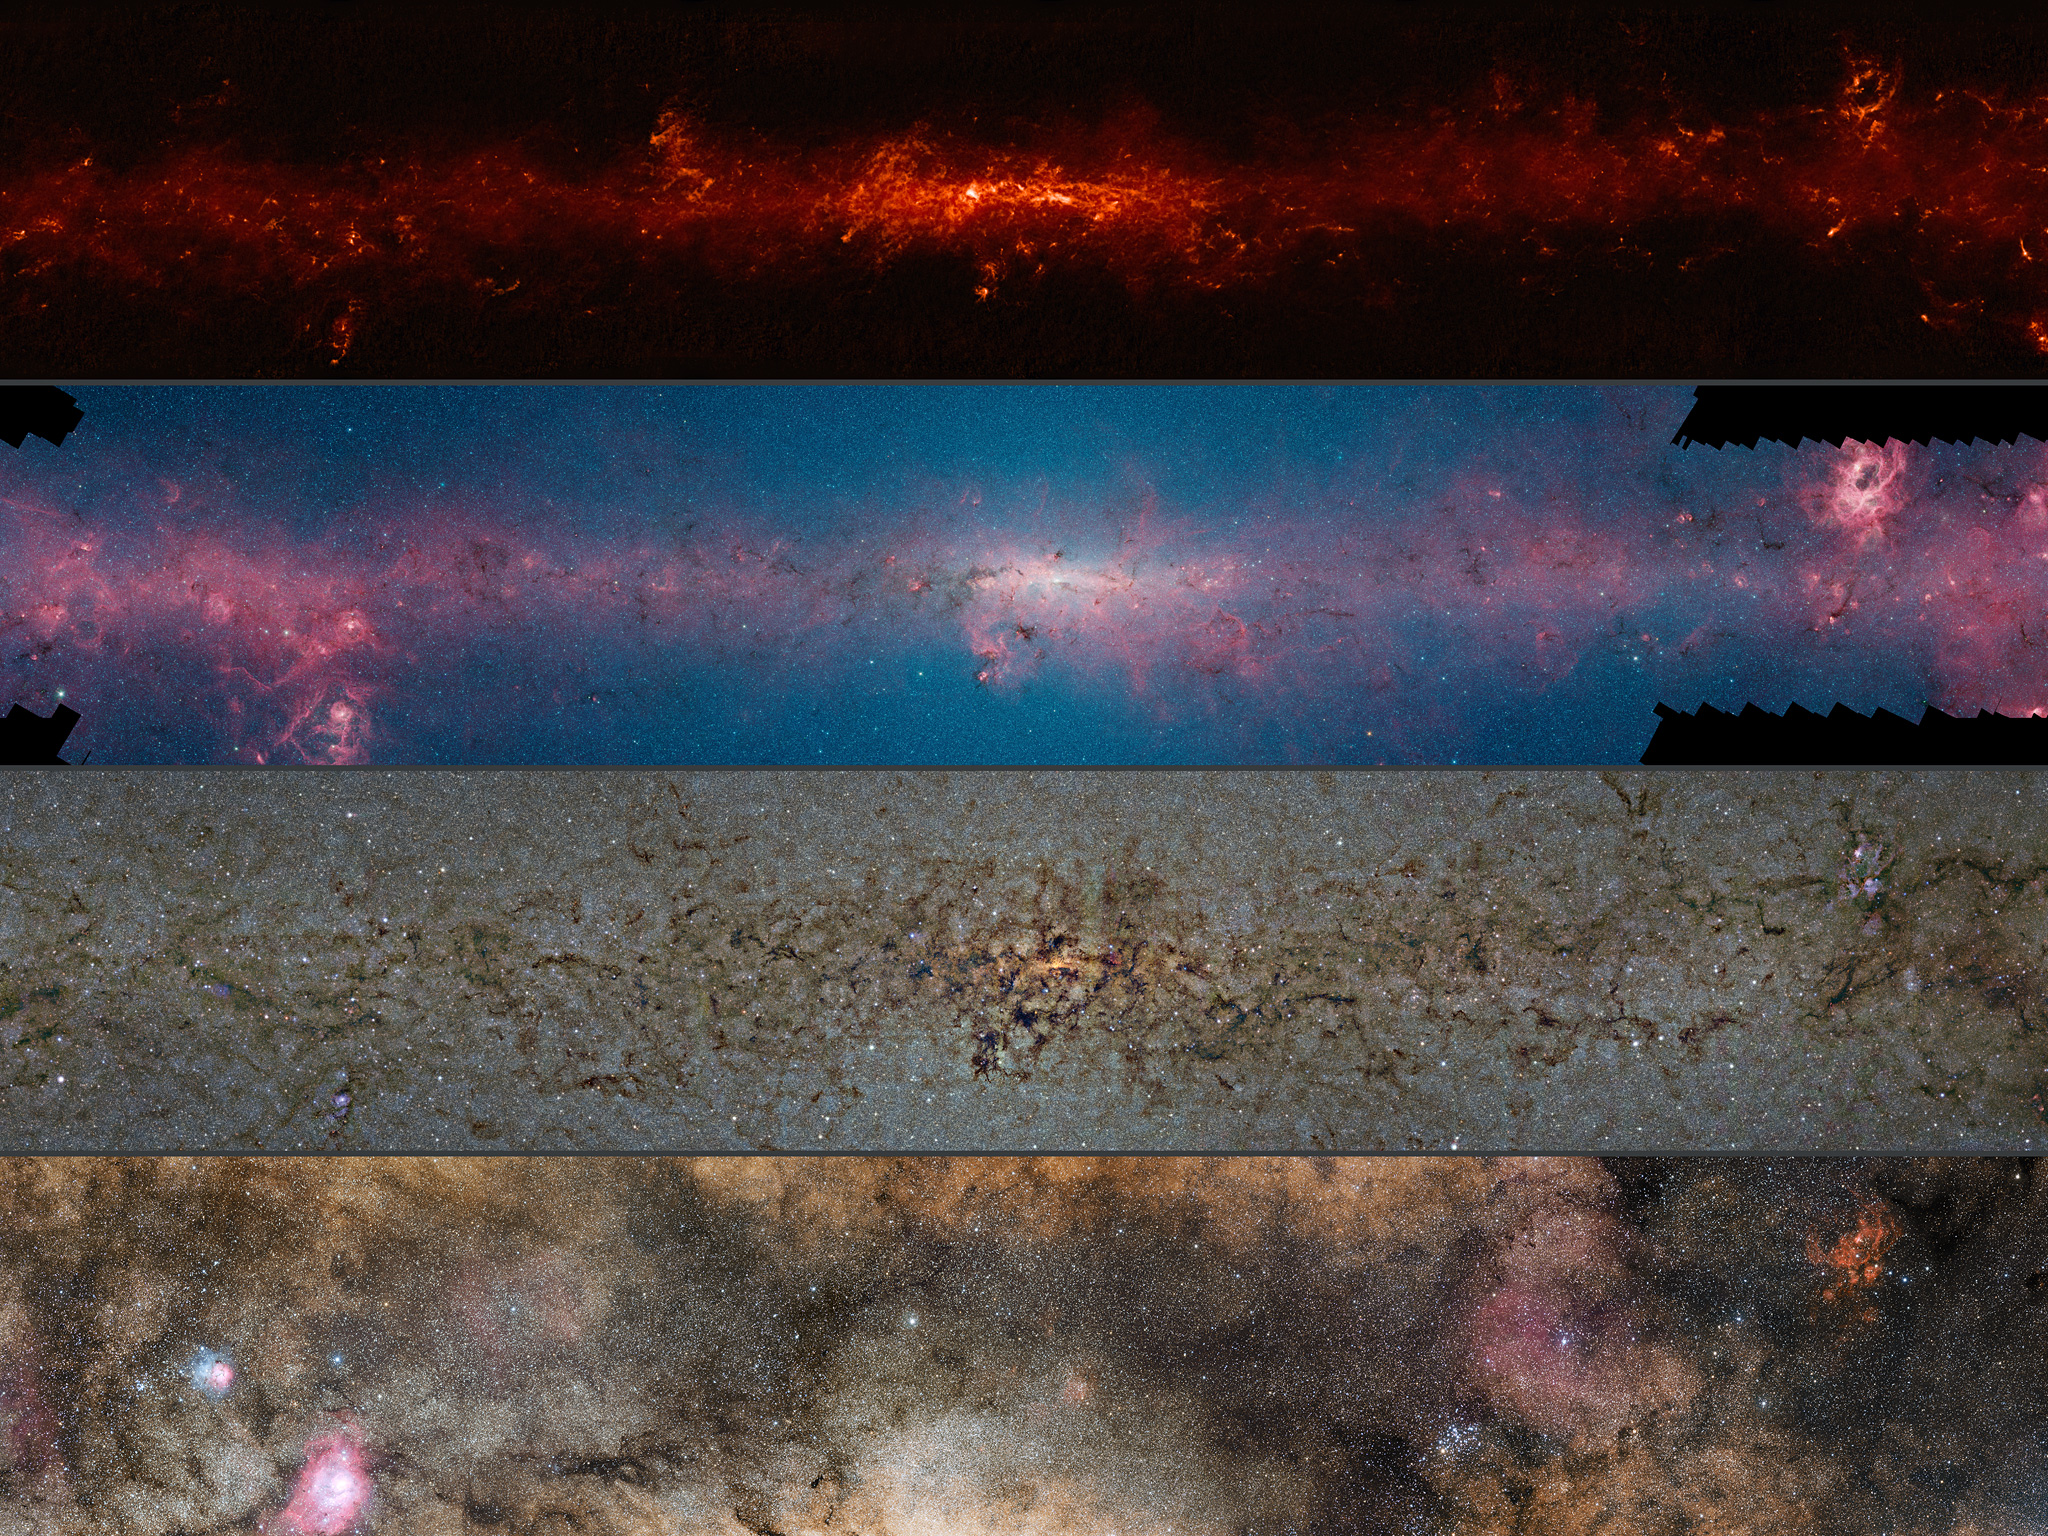 This comparison shows the central regions of the Milky Way observed at different wavelengths.  The top panel shows compact sources of submillimetre radiation detected by APEX as part of the ATLASGAL survey, combined with complementary data from ESA's Planck satellite, to capture more extended features.  The second panel shows the same region as seen in shorter, infrared, wavelengths by the NASA Spitzer Space Telescope.  The third panel shows the same part of sky again at even shorter wavelengths, the near-infrared, as seen by ESO's VISTA infrared survey telescope at the Paranal Observatory in Chile. Regions appearing as dark dust tendrils here show up brightly in the ATLASGAL view.  Finally the bottom picture shows the more familiar view in visible light, where most of the more distant structures are hidden from view.  The significance of the colours varies from image to image and they cannot be directly compared. -  Credit:  ESO/ATLASGAL consortium/NASA/GLIMPSE consortium/VVV Survey/ESA/Planck/D. Minniti/S. Guisard -  Acknowledgement: Ignacio Toledo, Martin Kornmesser